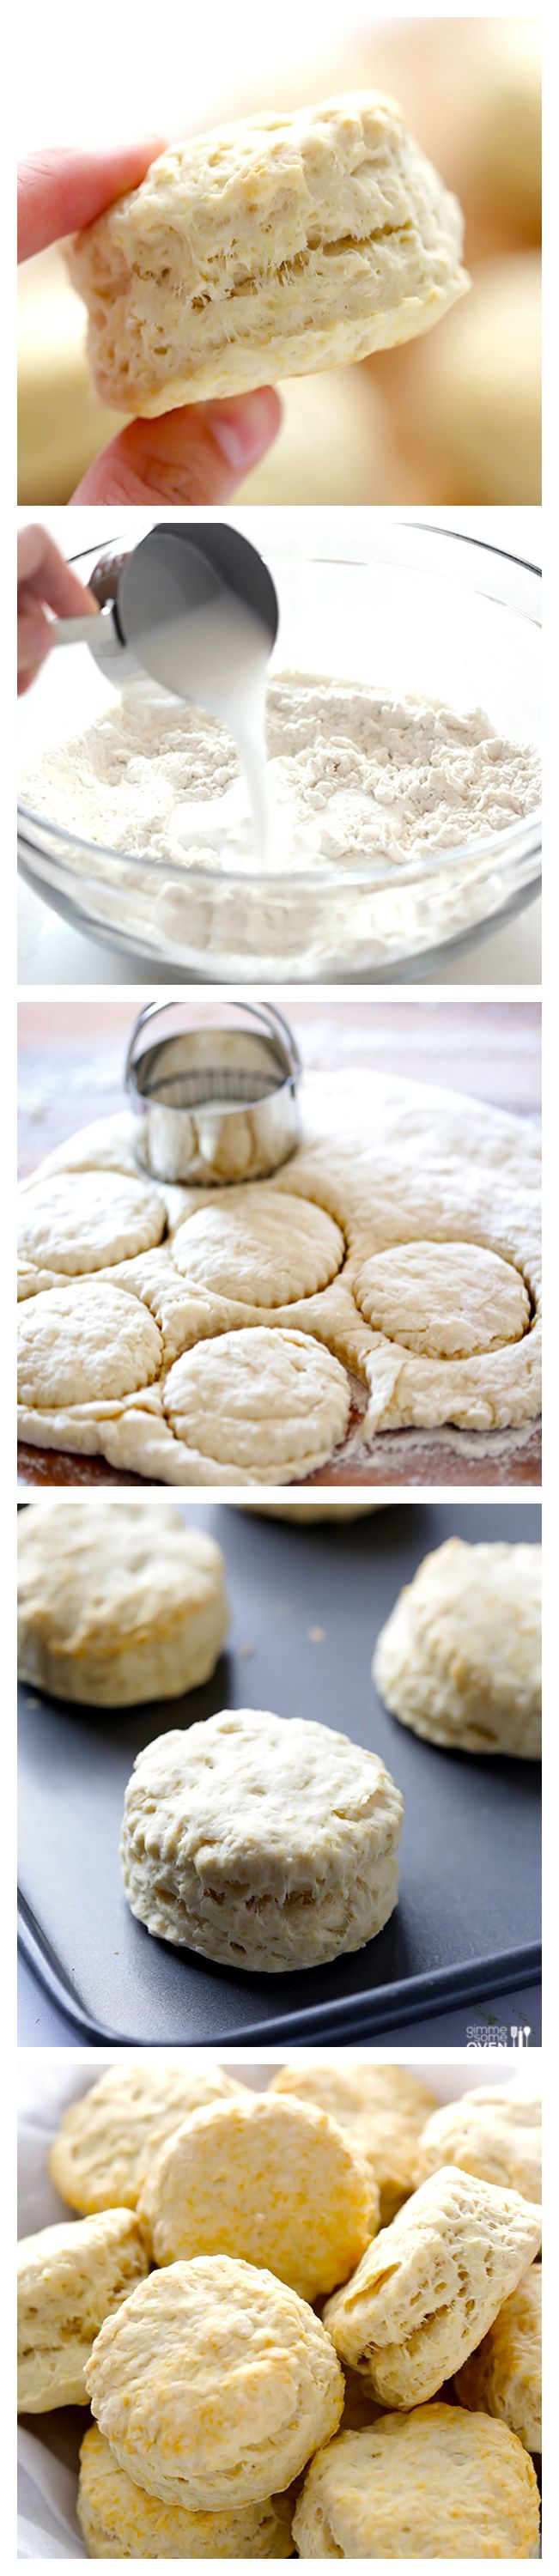 3-Ingredient Coconut Oil Biscuits -- They're super easy to make, delicious, naturally vegan, and ready to go in 20 minutes | gimmesomeoven.com